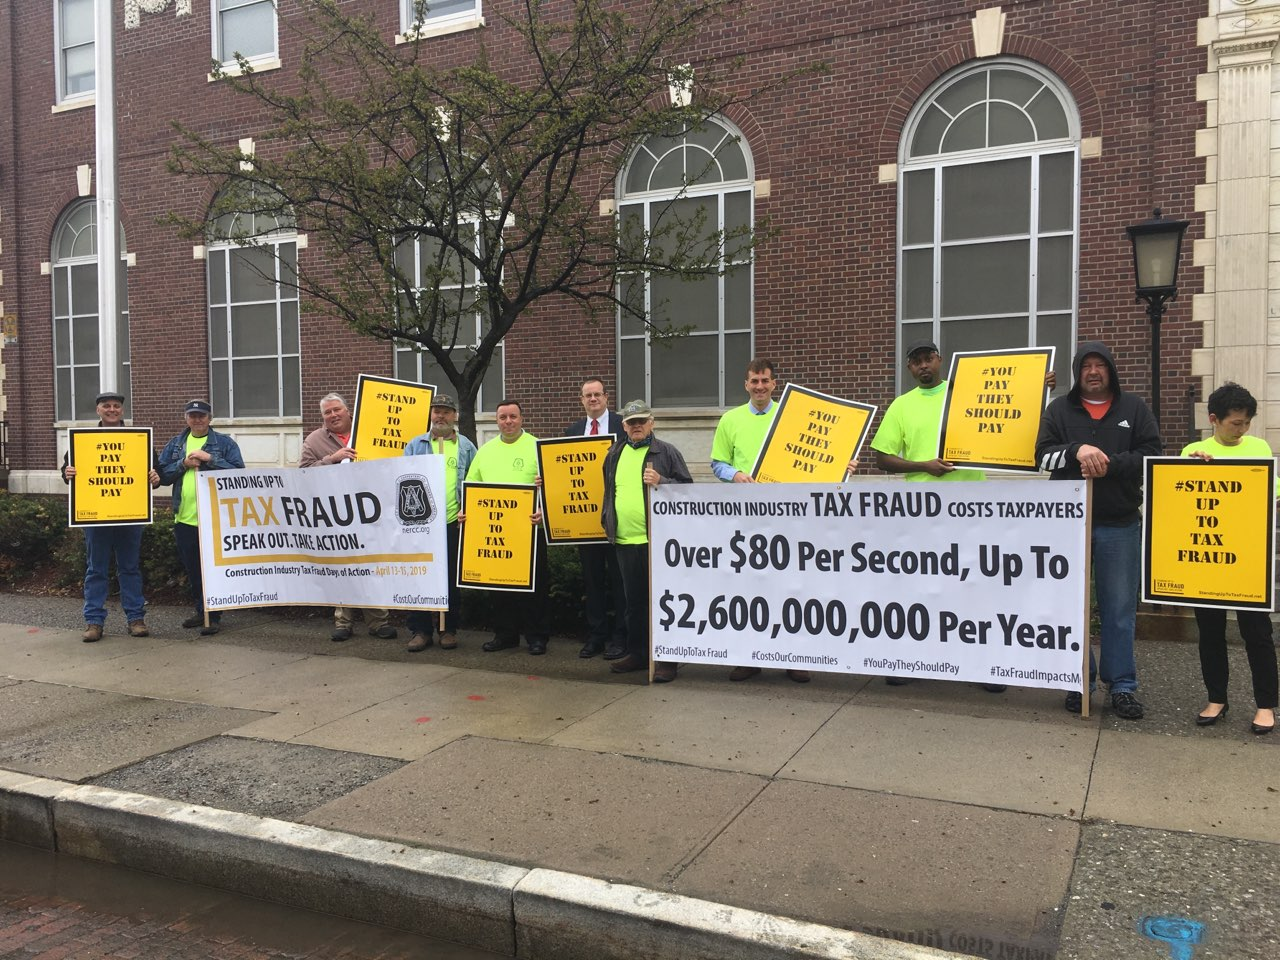 Assemblyman Karl Brabenec (R,C,I-Deerpark) [fifth from left] joins local officials and labor leaders for a rally to prevent wage theft and tax fraud in front of the Newburgh Post Office on Monday, Apr